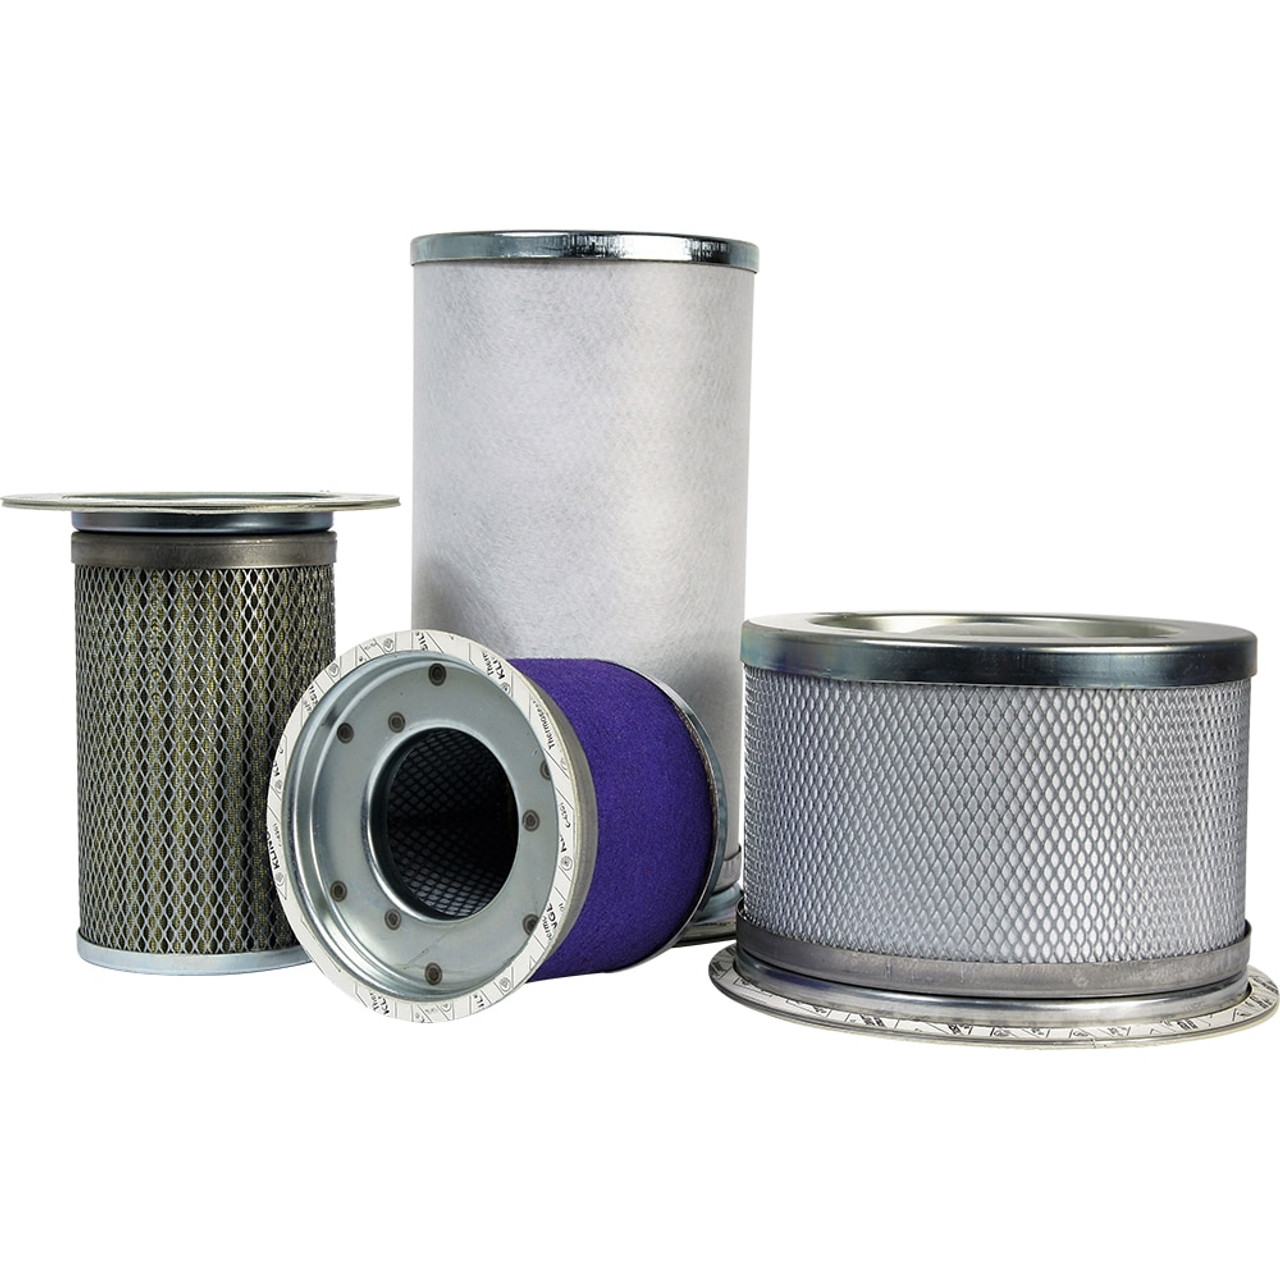 HY-PRO MN-HP32NL610WV Direct Interchange for HY-PRO-HP32NL610WV Stainless Steel Millennium Filters